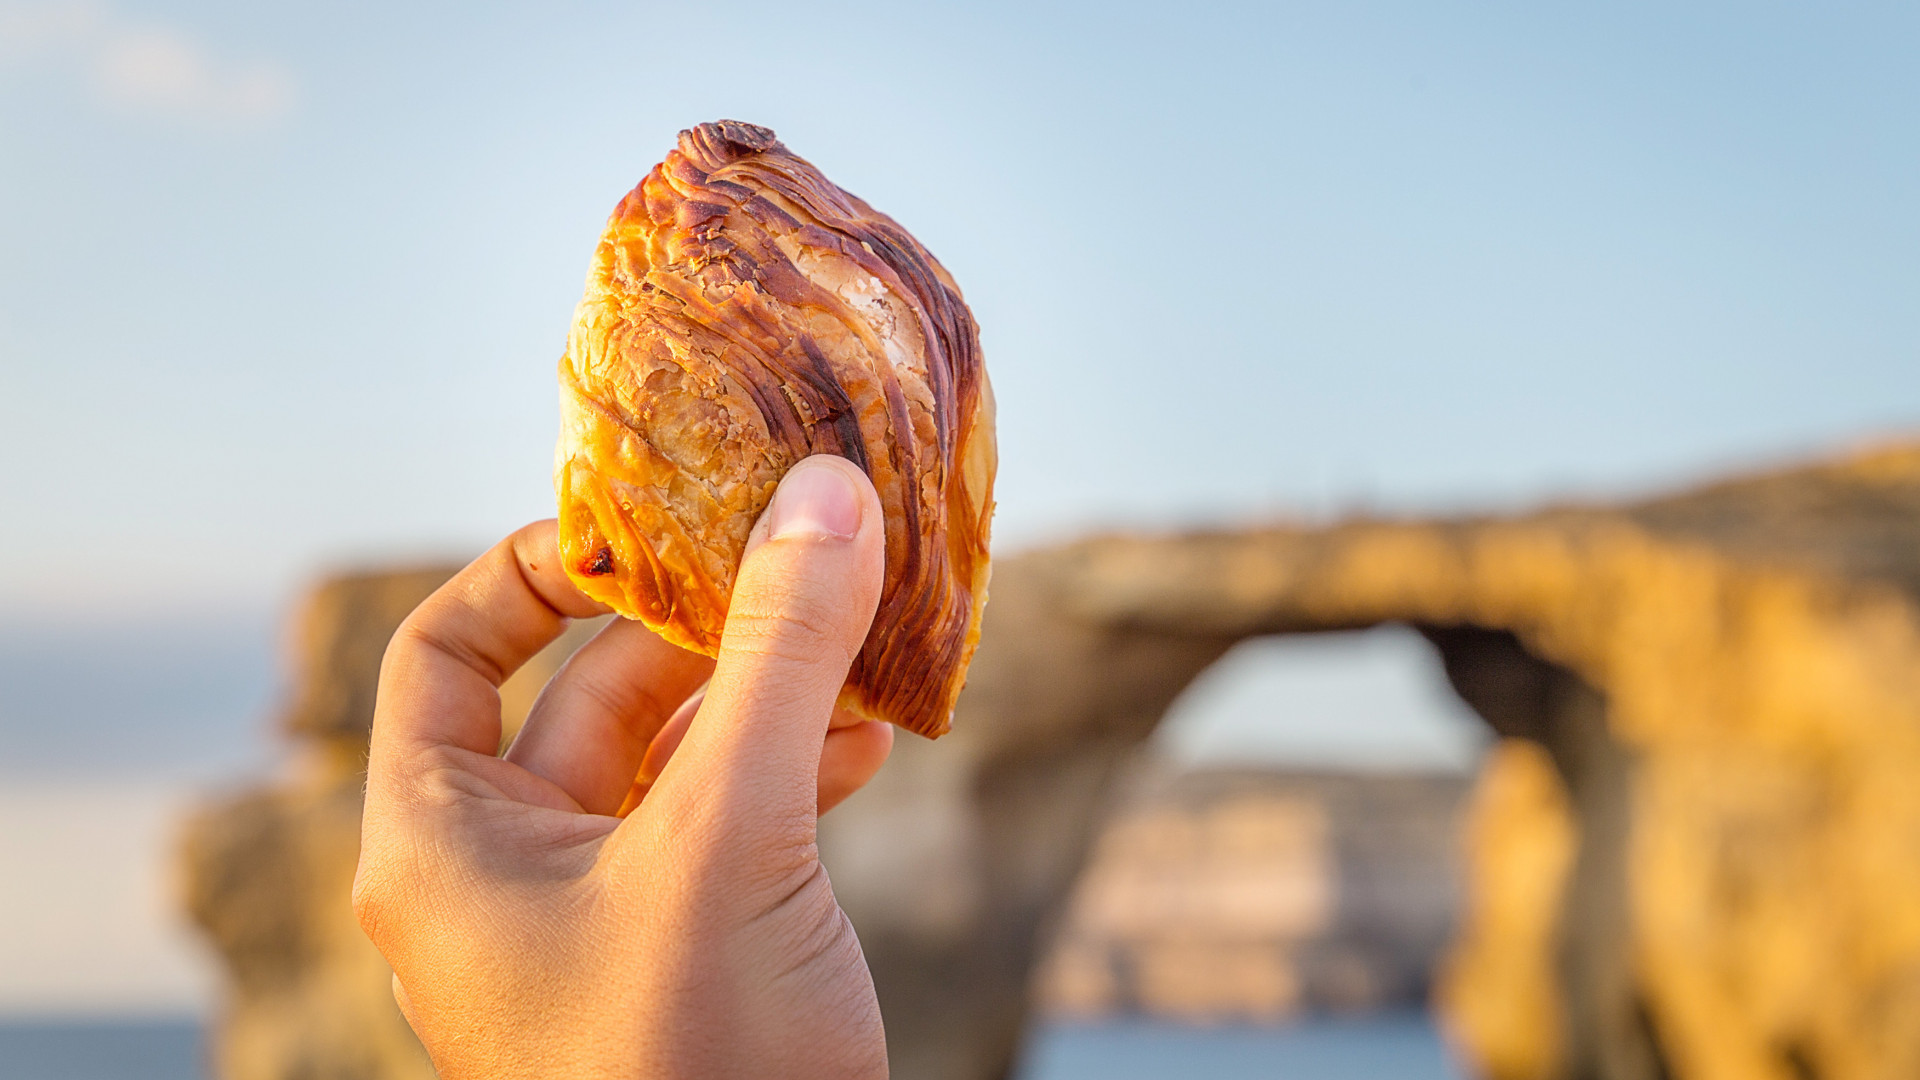 Take a trip to Malta: Pastizz, a traditional savoury pastry